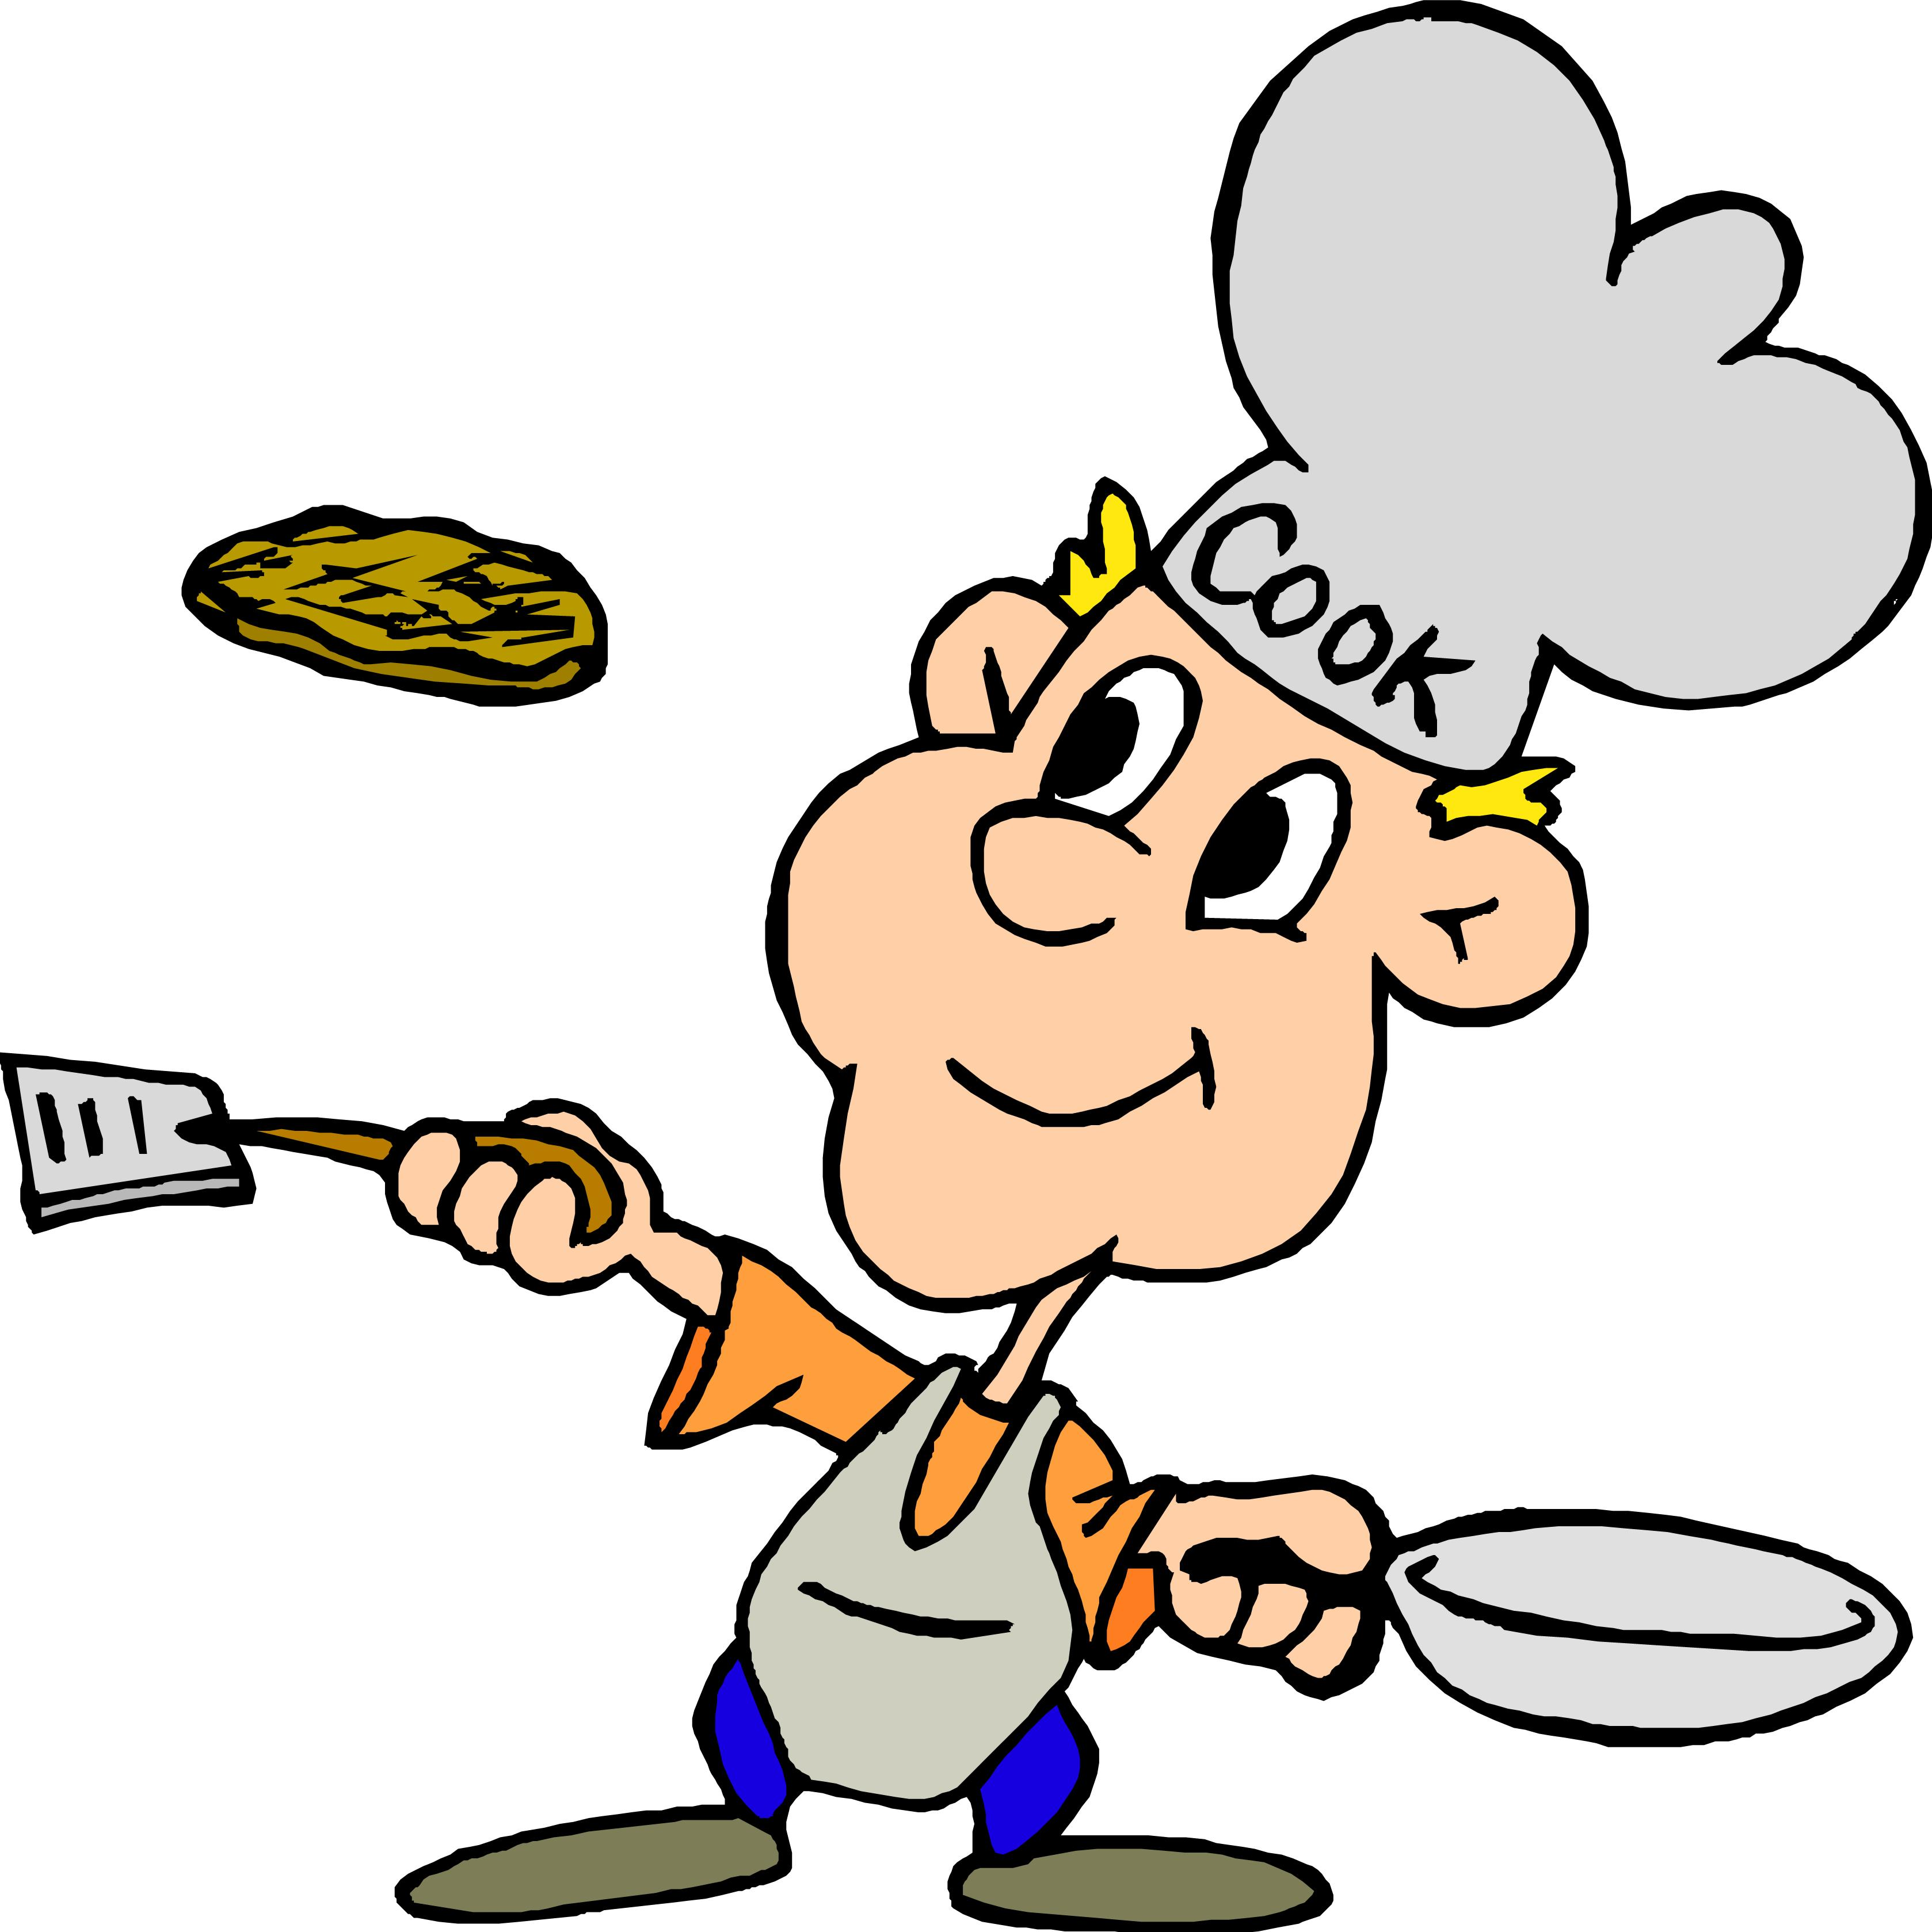 Disney character making pancakes clipart picture transparent download Cooking Cliparts - Cliparts and Others Art Inspiration picture transparent download